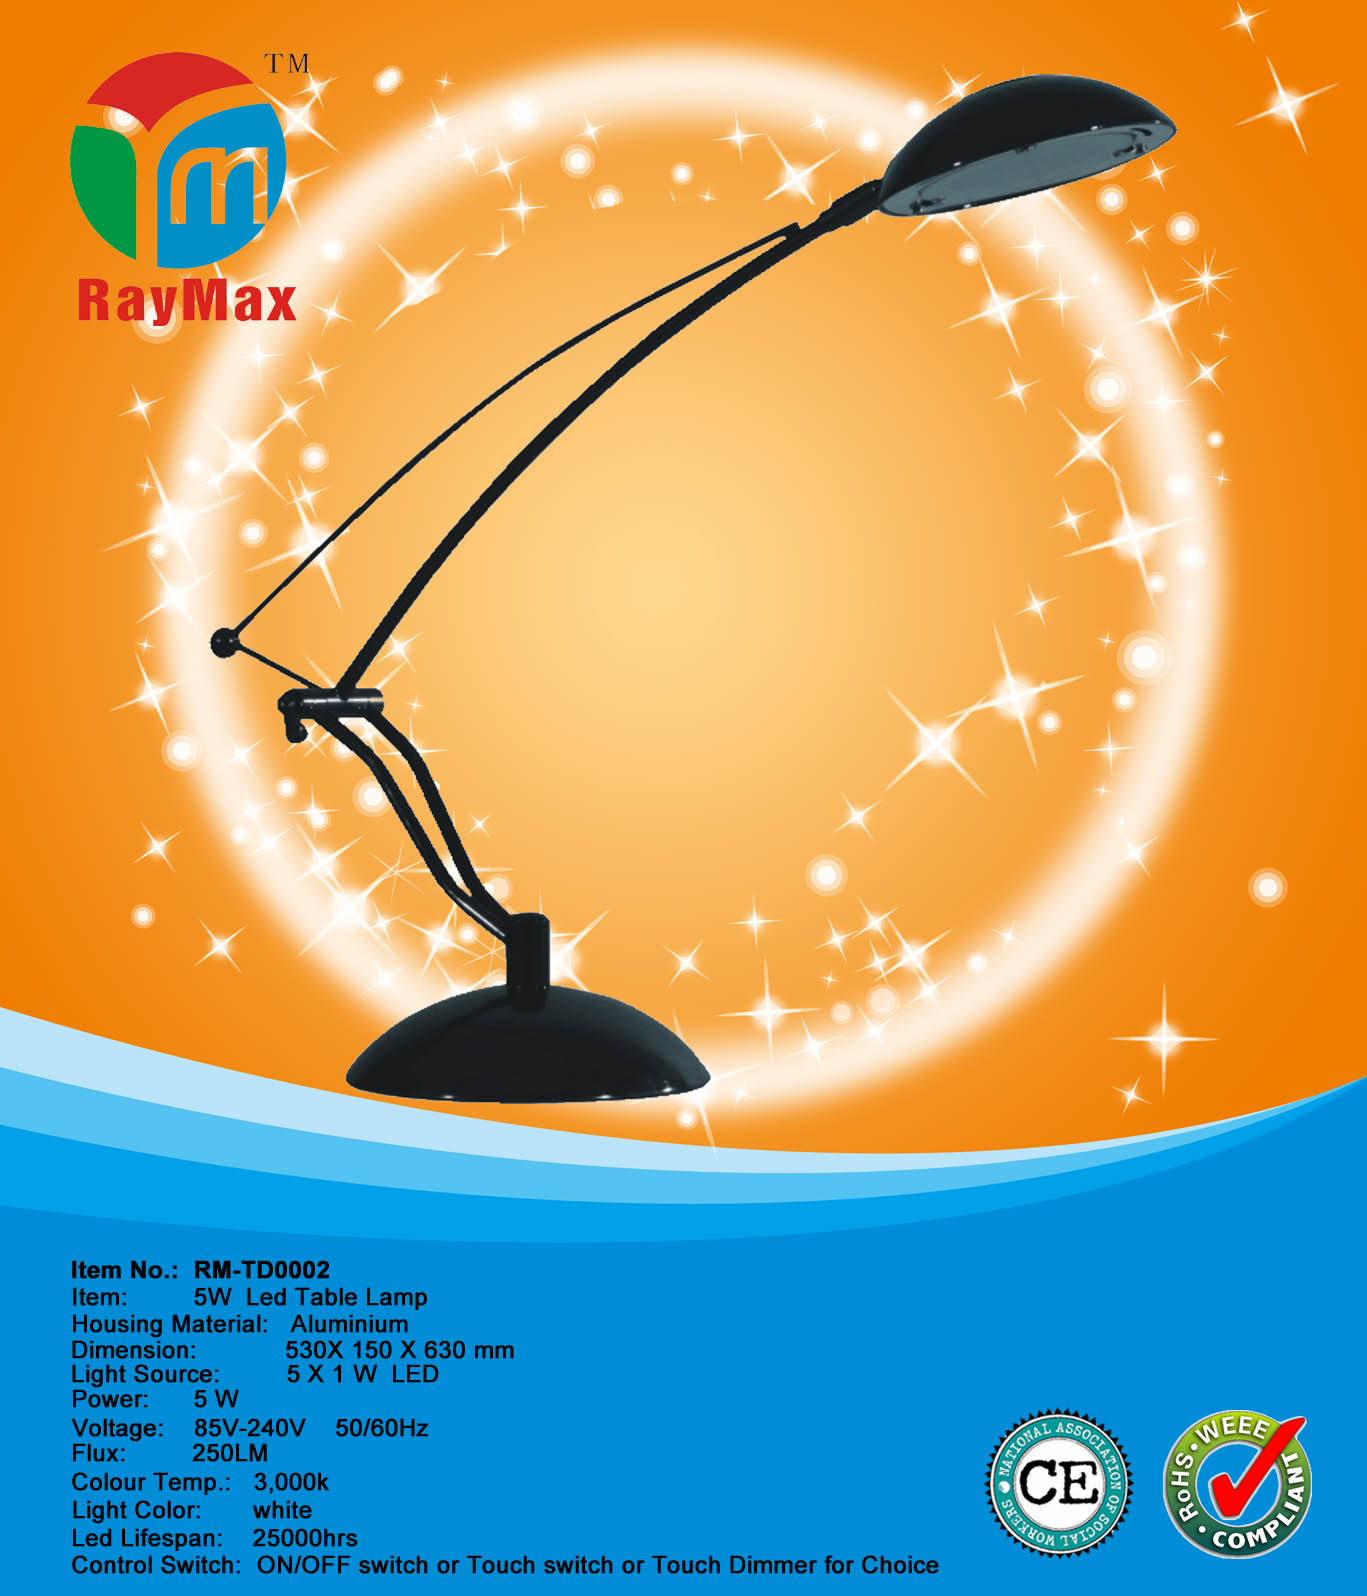 5W LED TABLE LAMP LIGHT